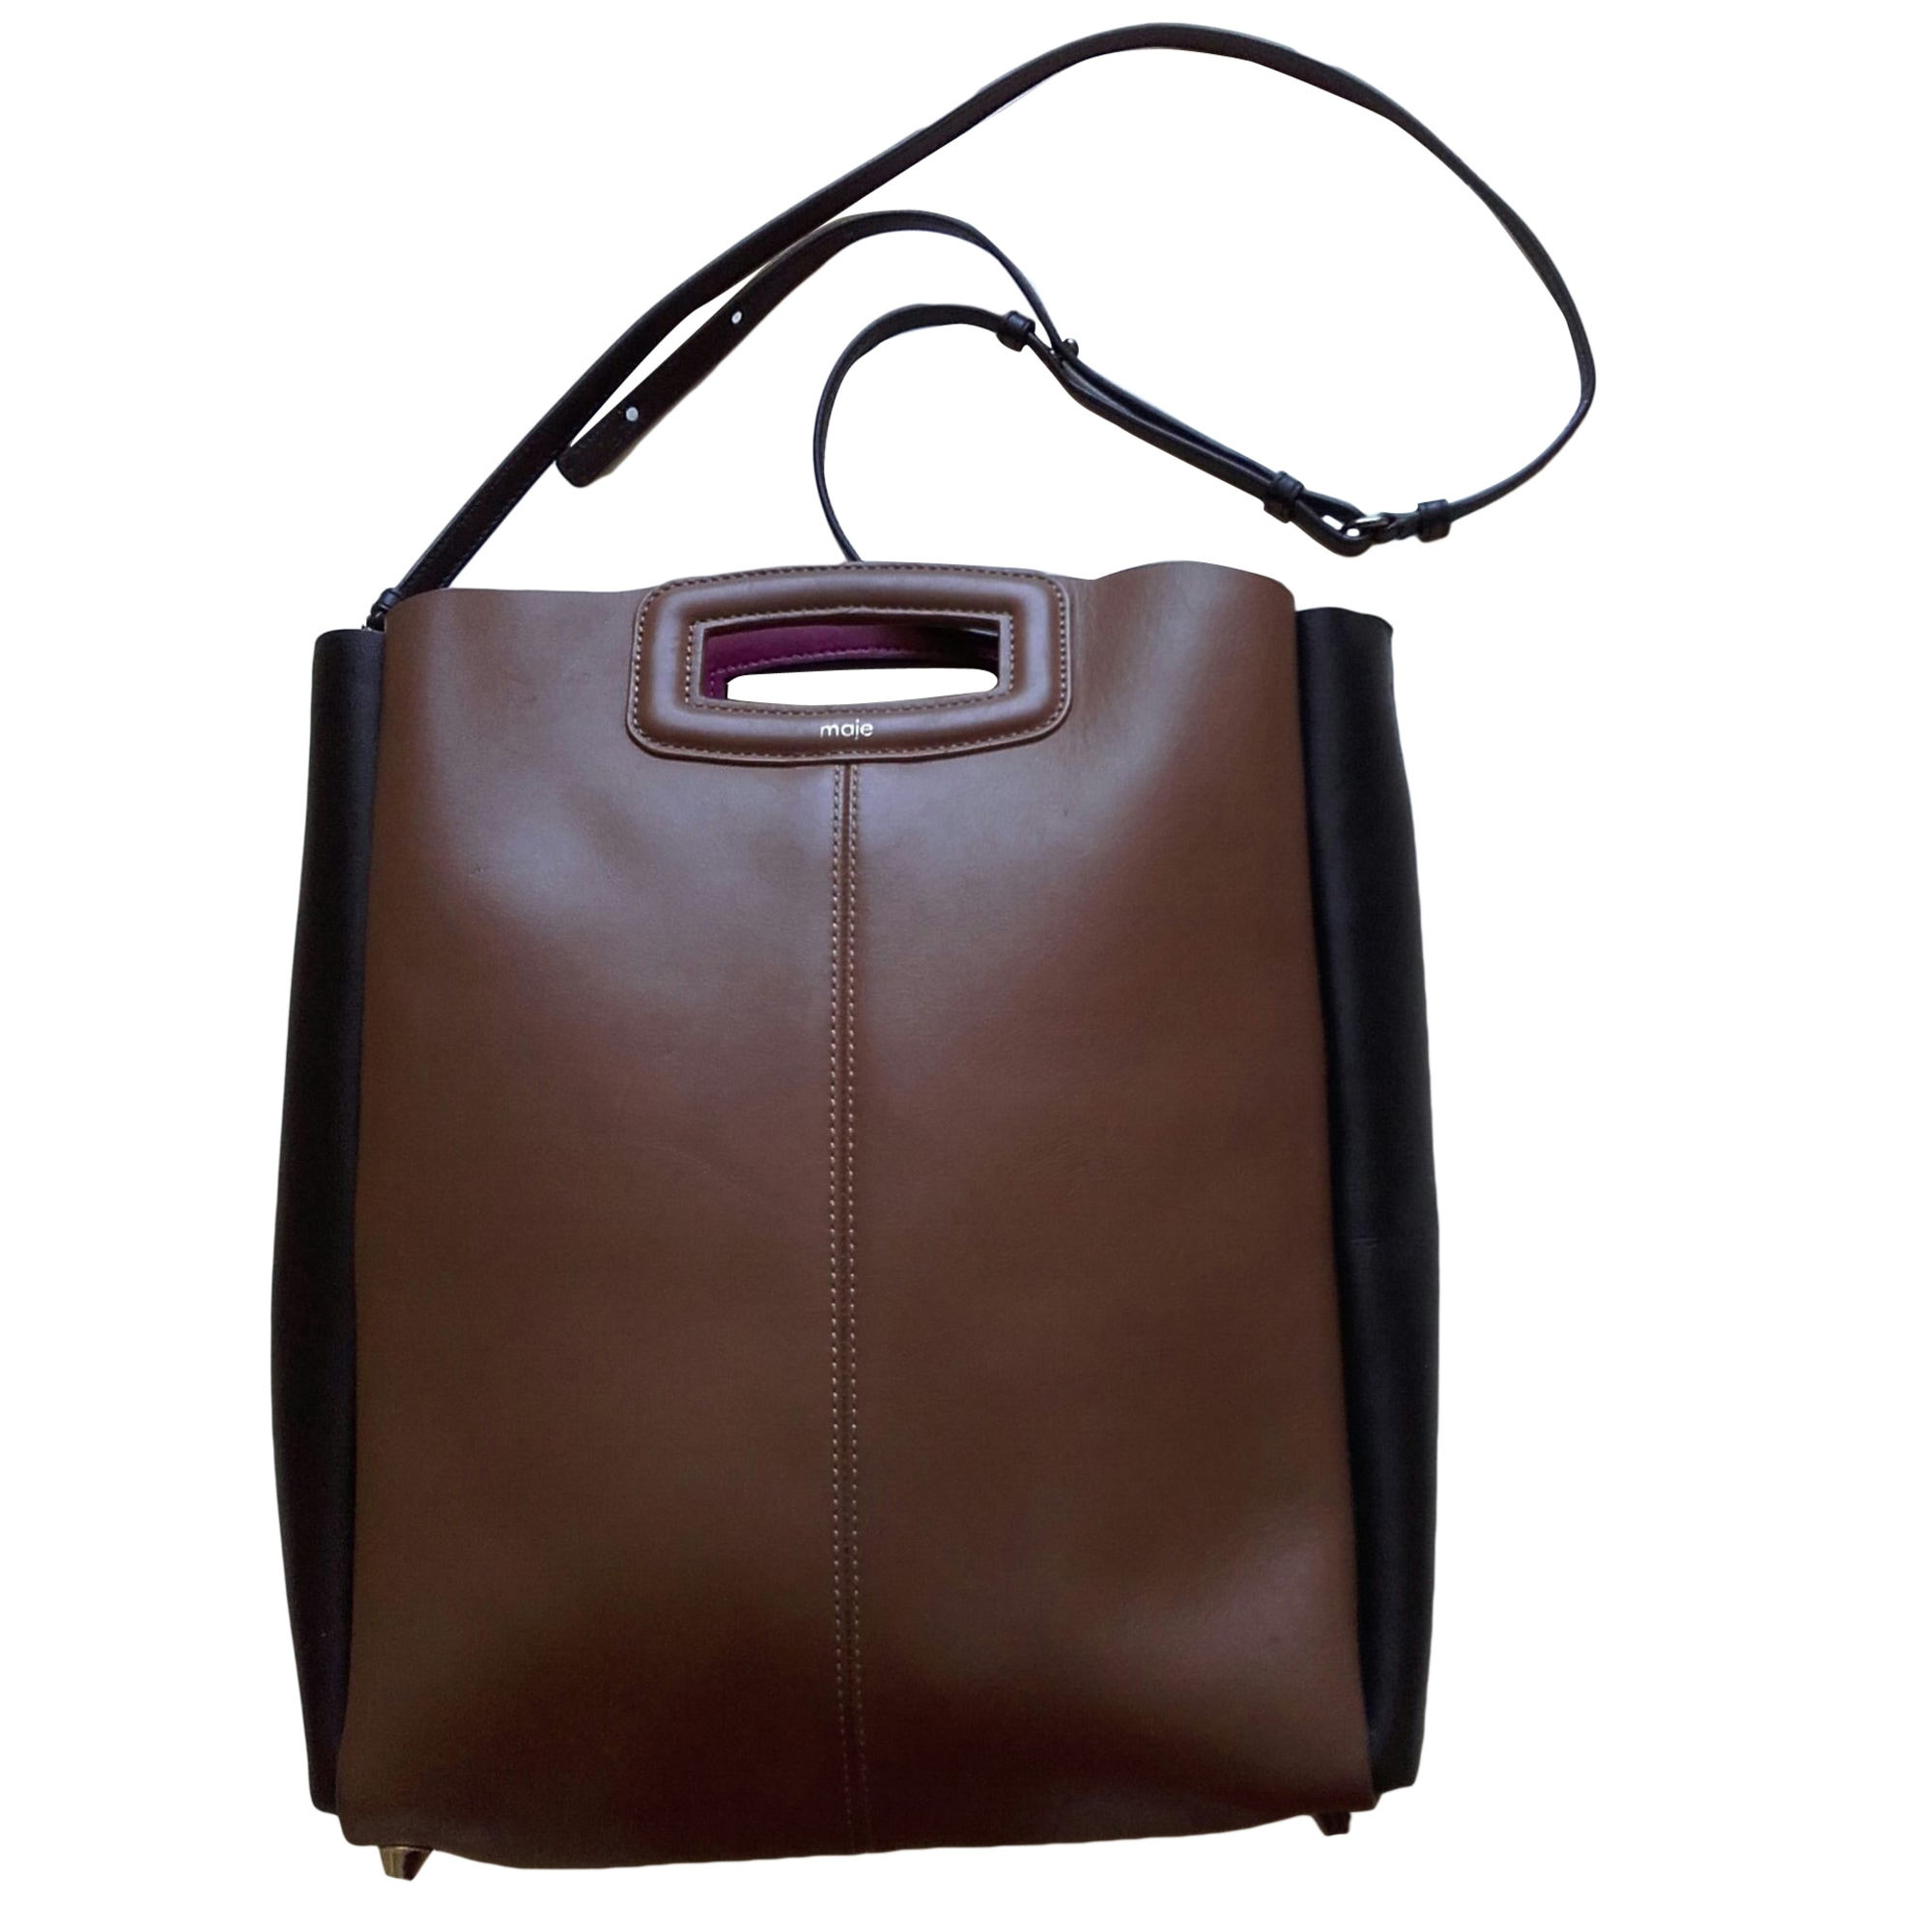 Leather Shoulder Bag MAJE bicolore, noir et marron